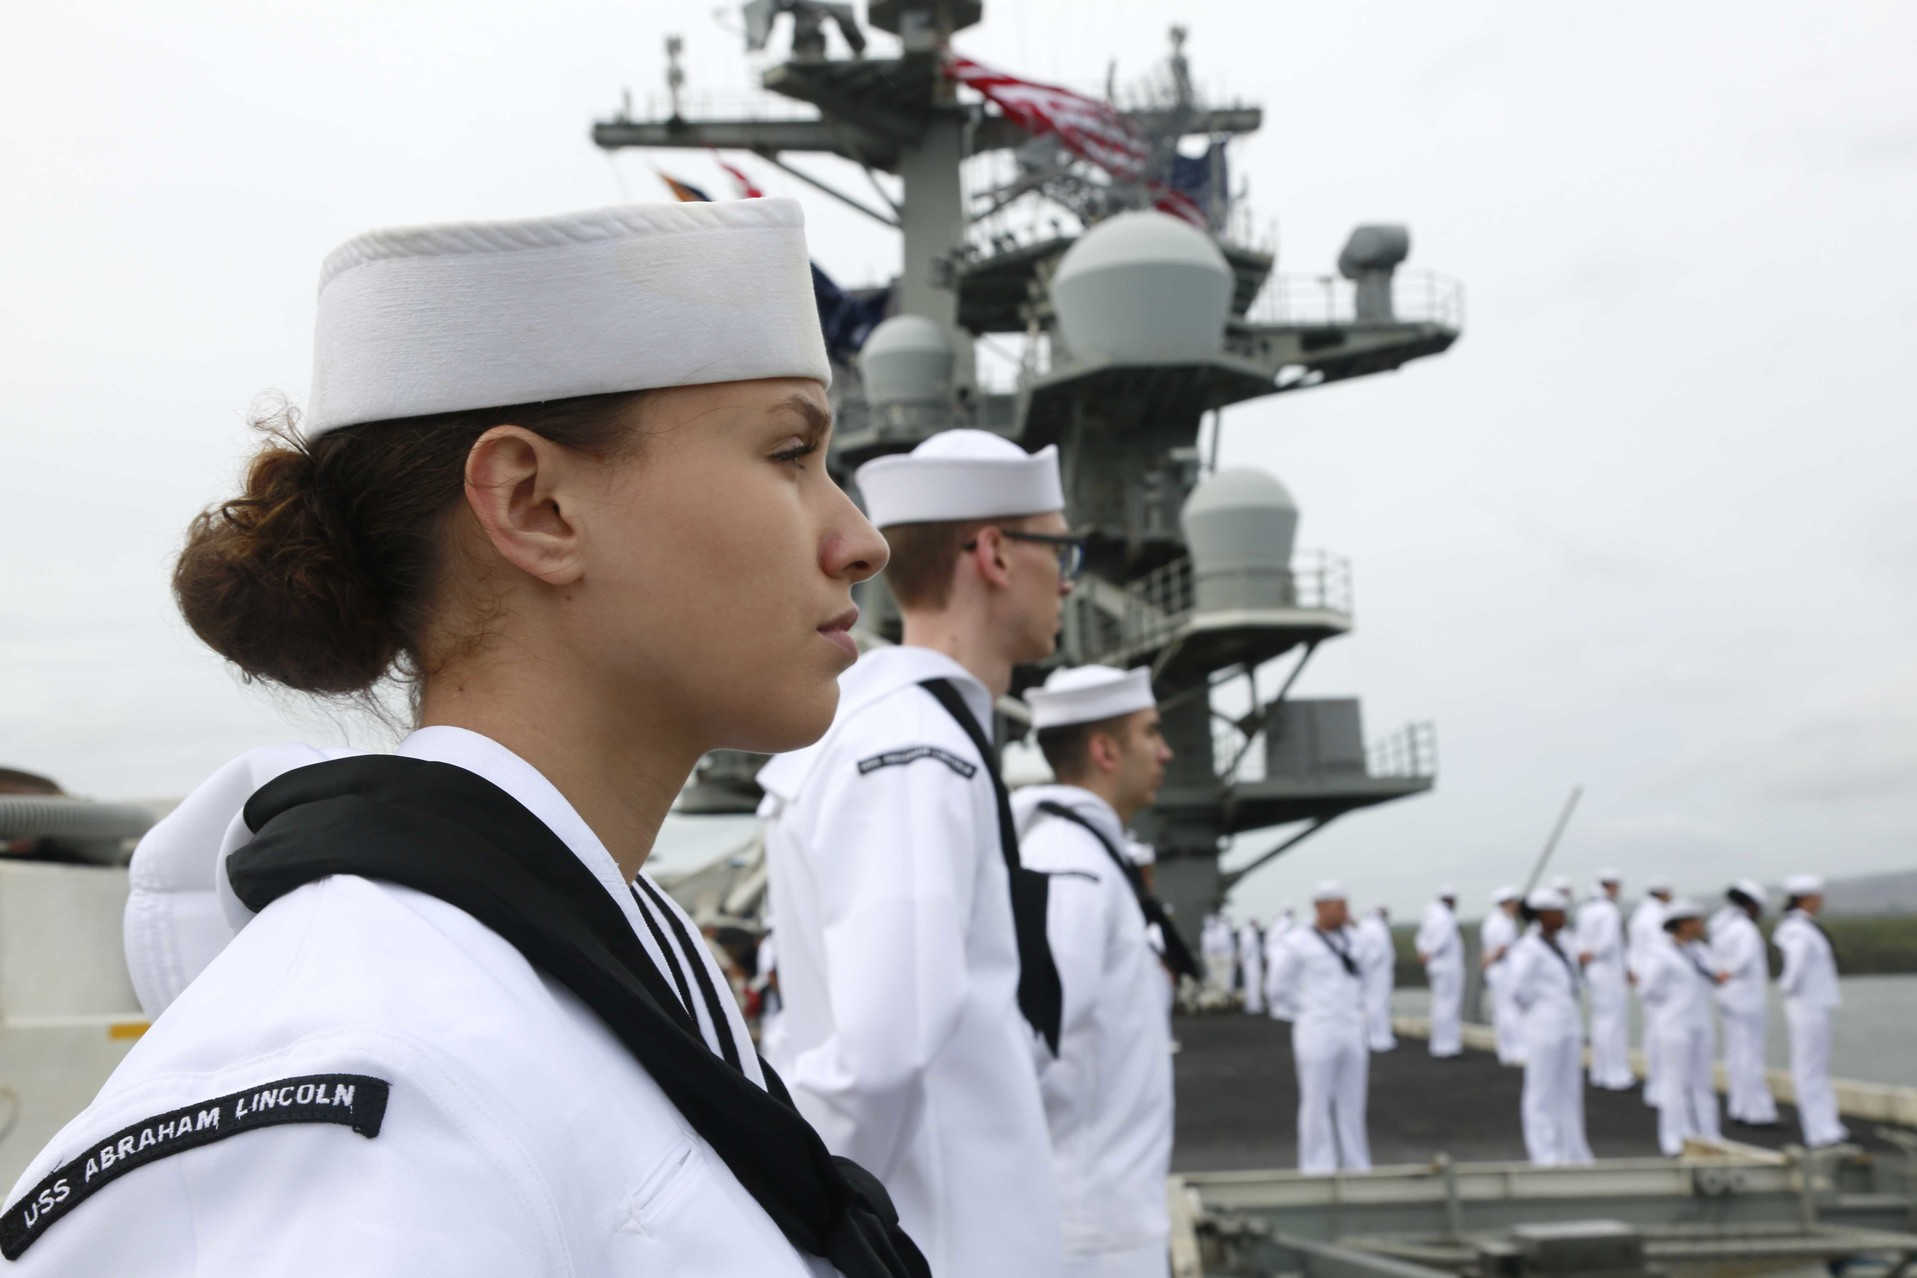 Sailors man the rails of the aircraft carrier USS Abraham Lincoln as the ship pulls out of Joint Base Pearl Harbor-Hickam, Hawaii, following a scheduled port visit, Jan. 14, 2020.